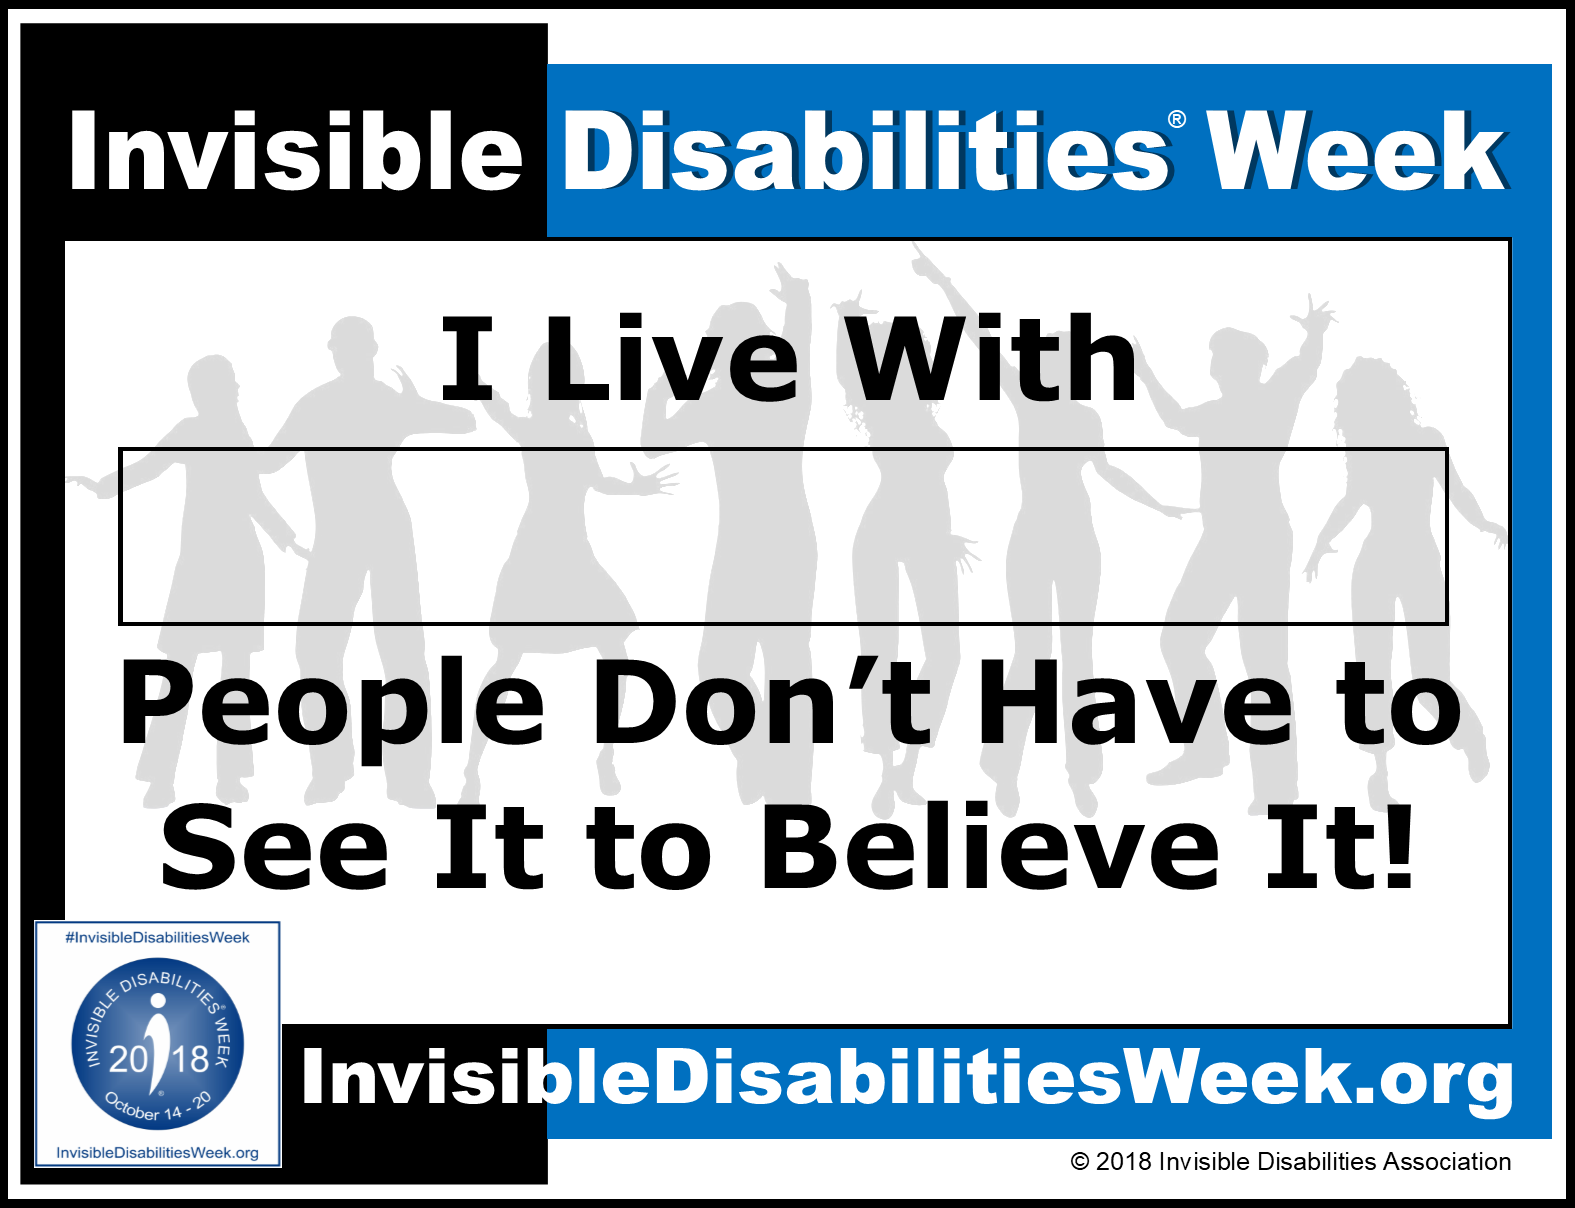 2018 Invisible Disabilities Week Don't Have to See It to Believe It Sign